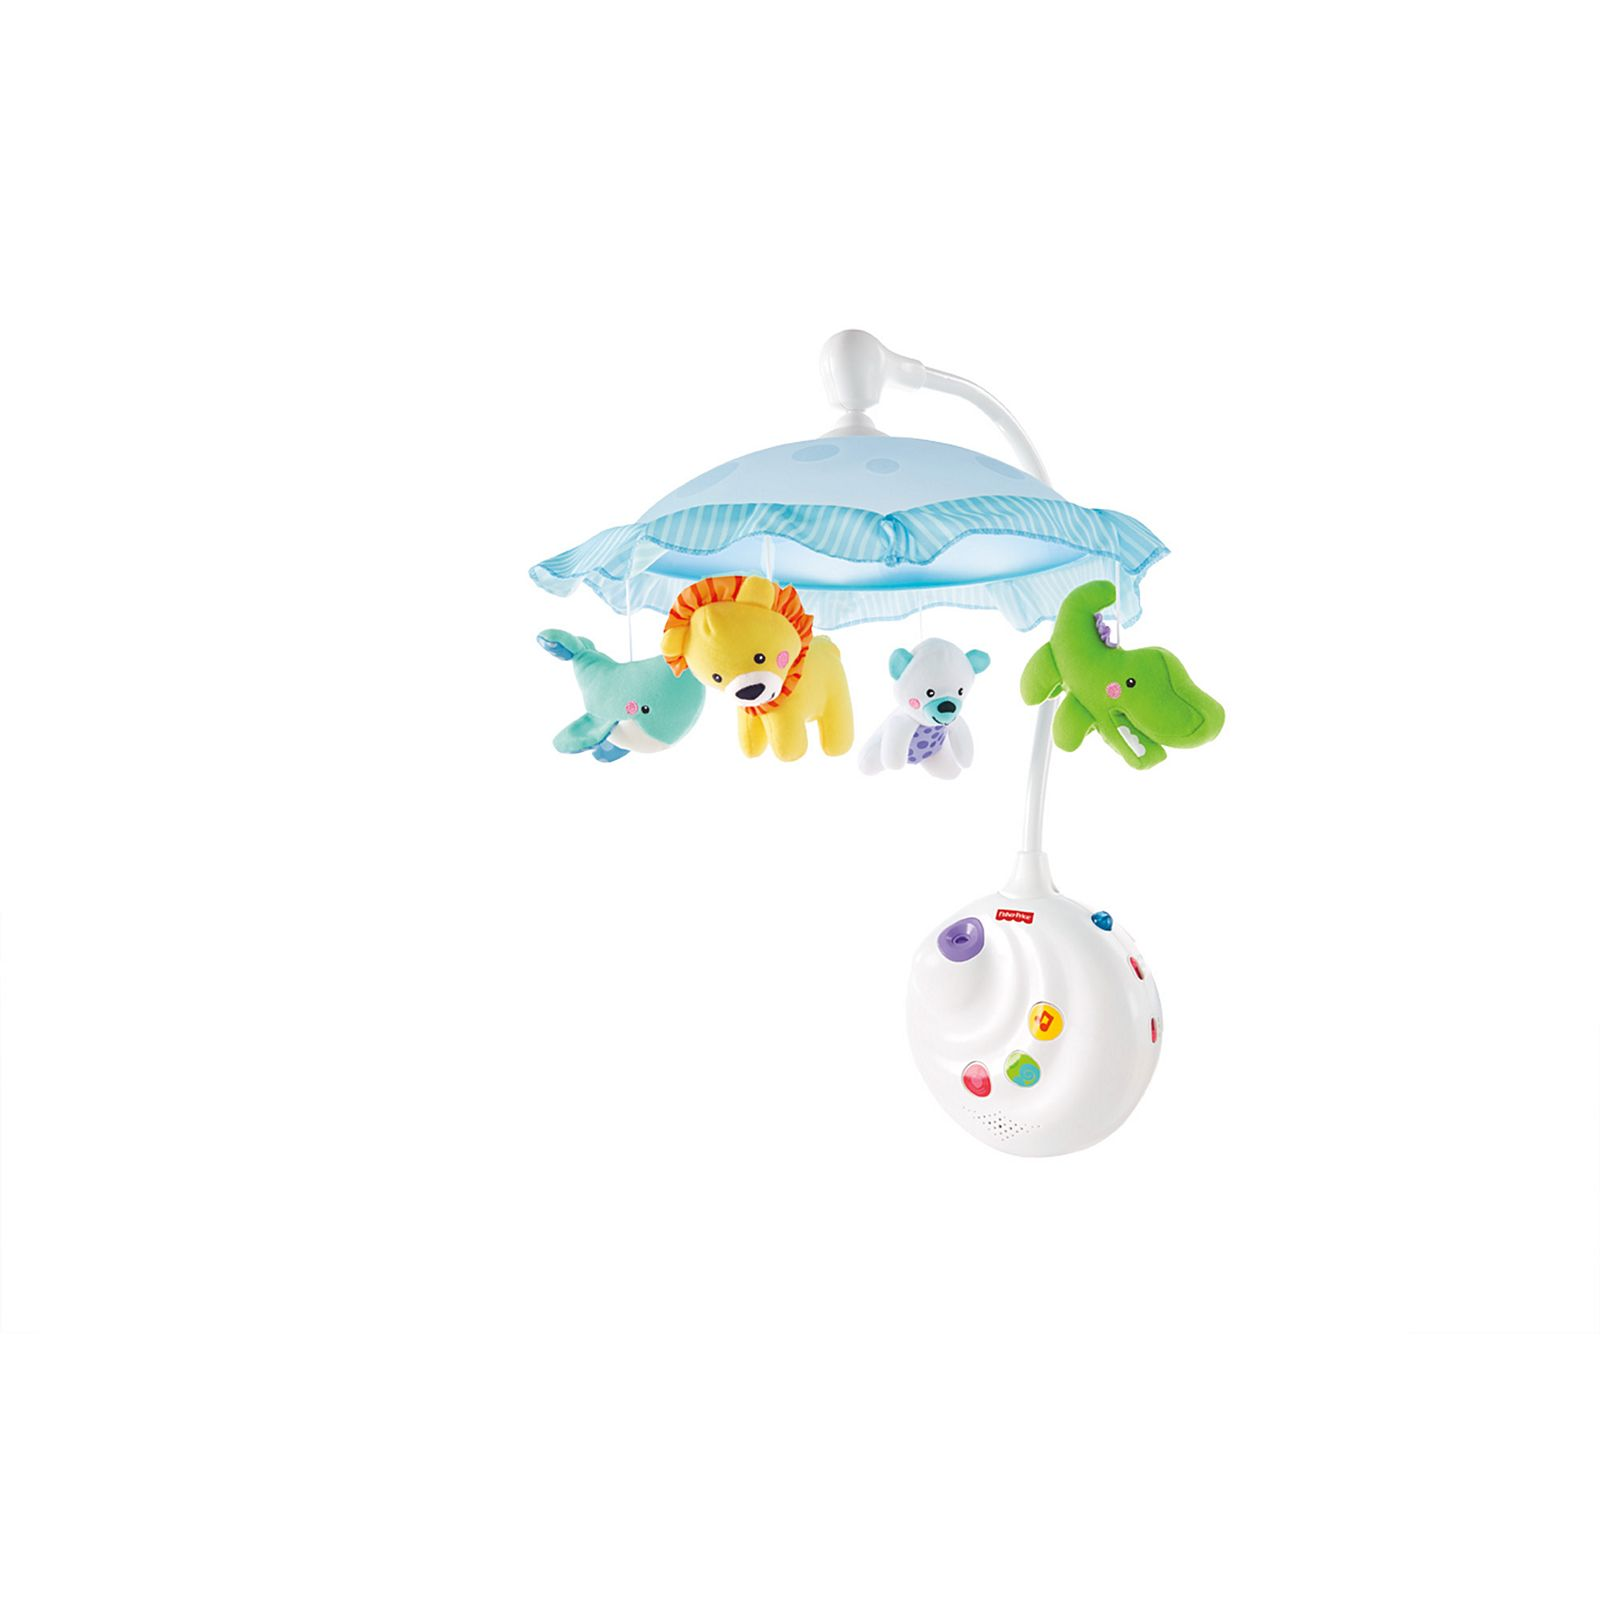 Fisher Price 2-in-1 Projection Crib Mobile, Precious Planet by Fisher-Price